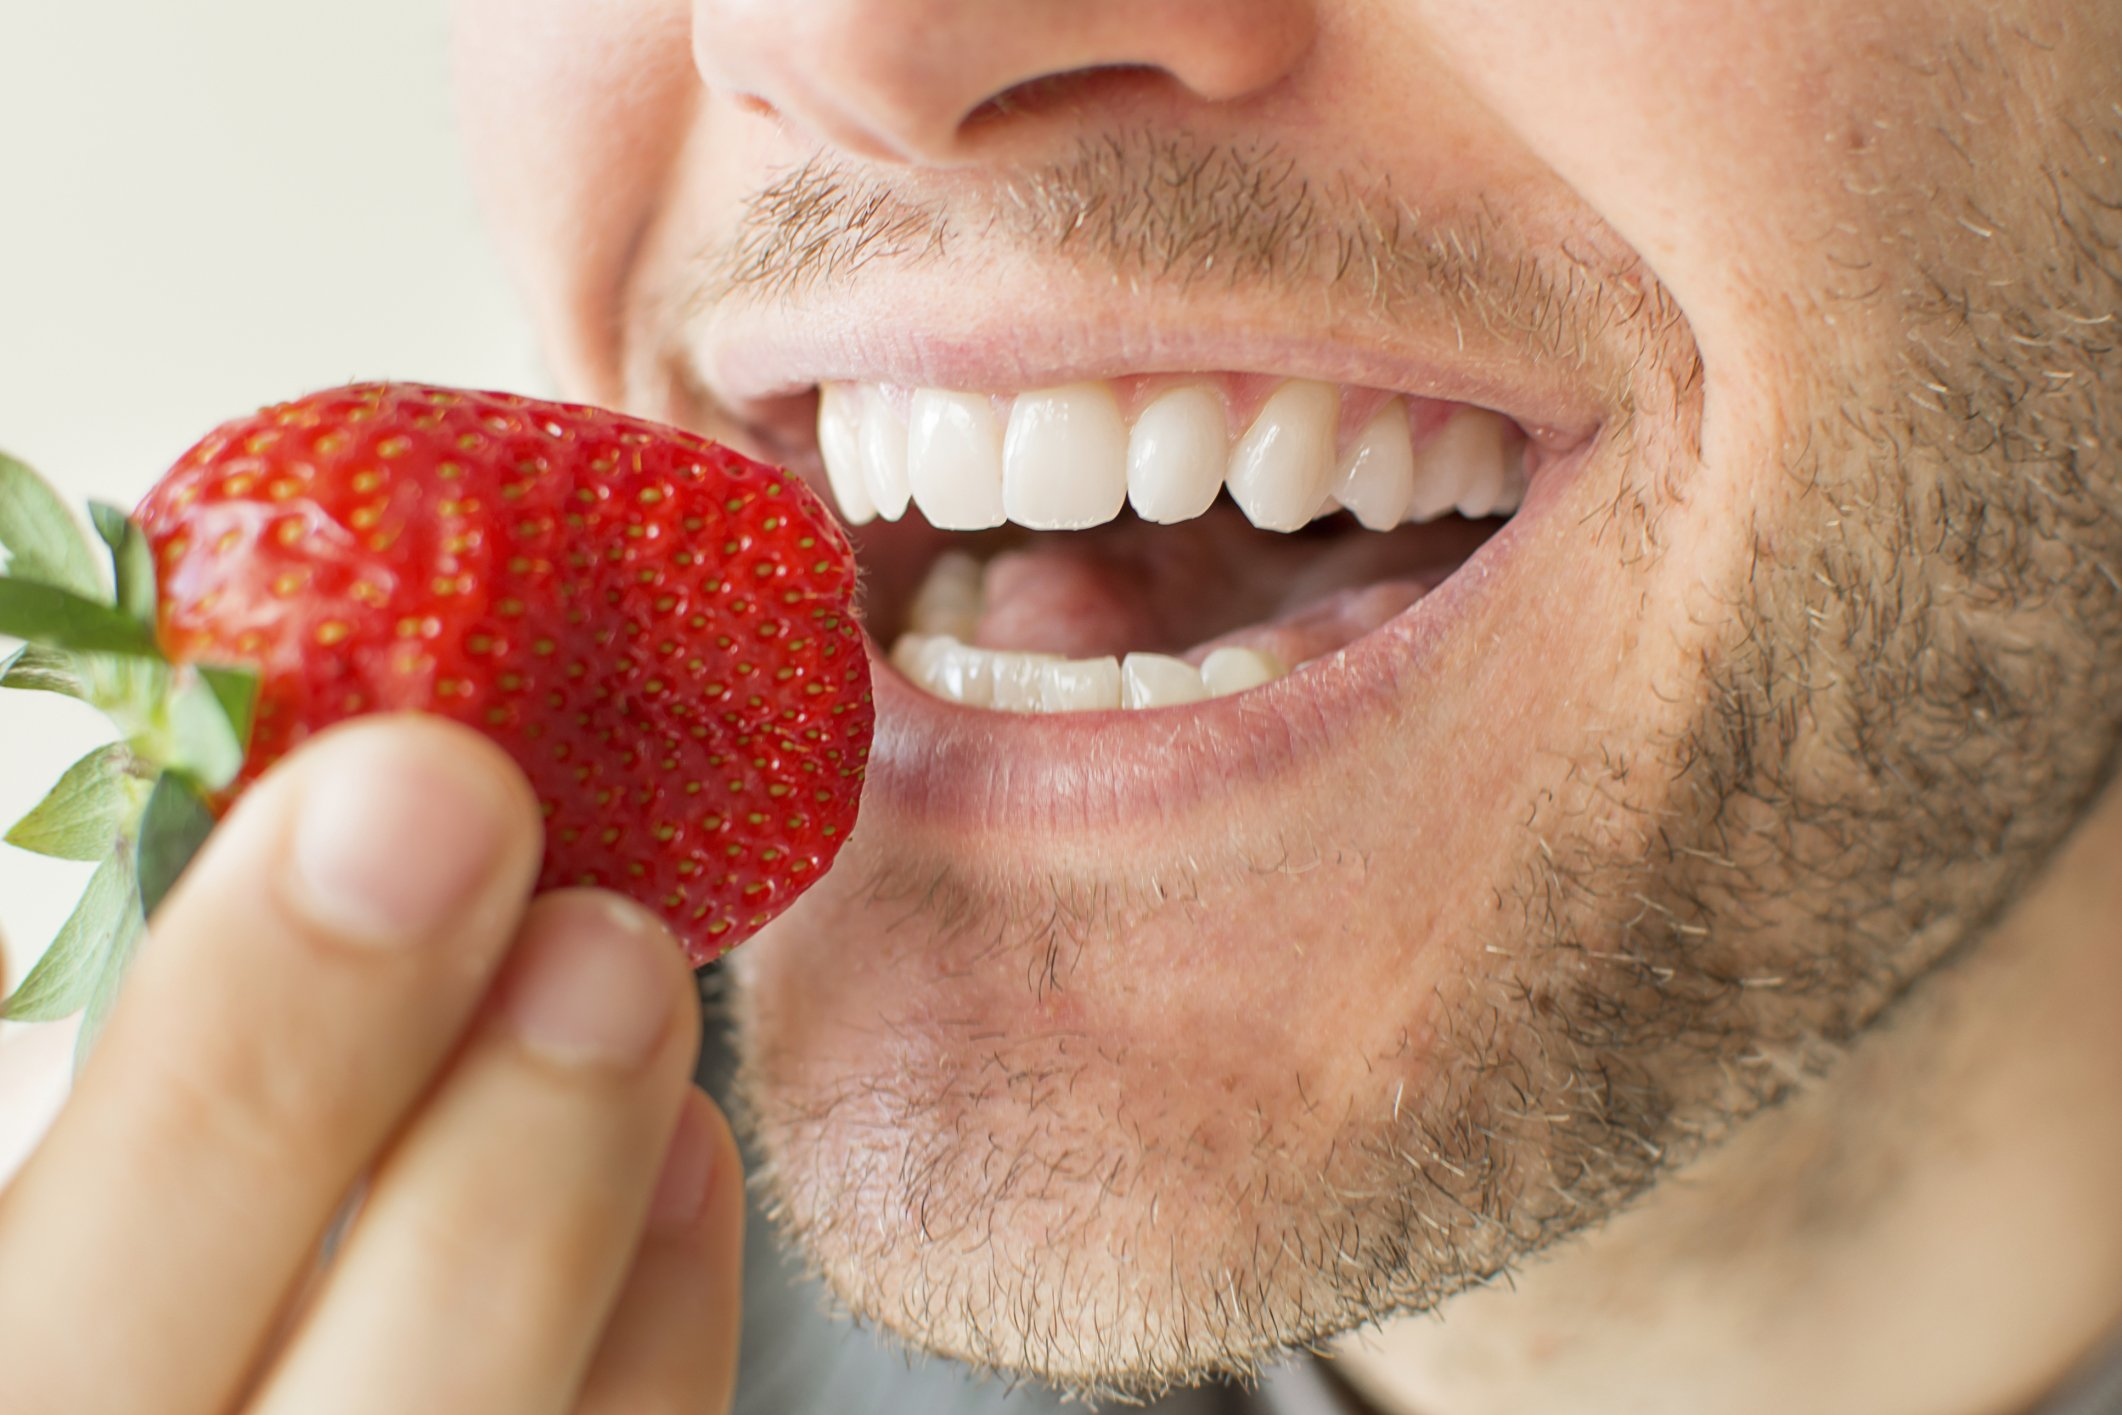 Closeup of a man's face eating strawberry